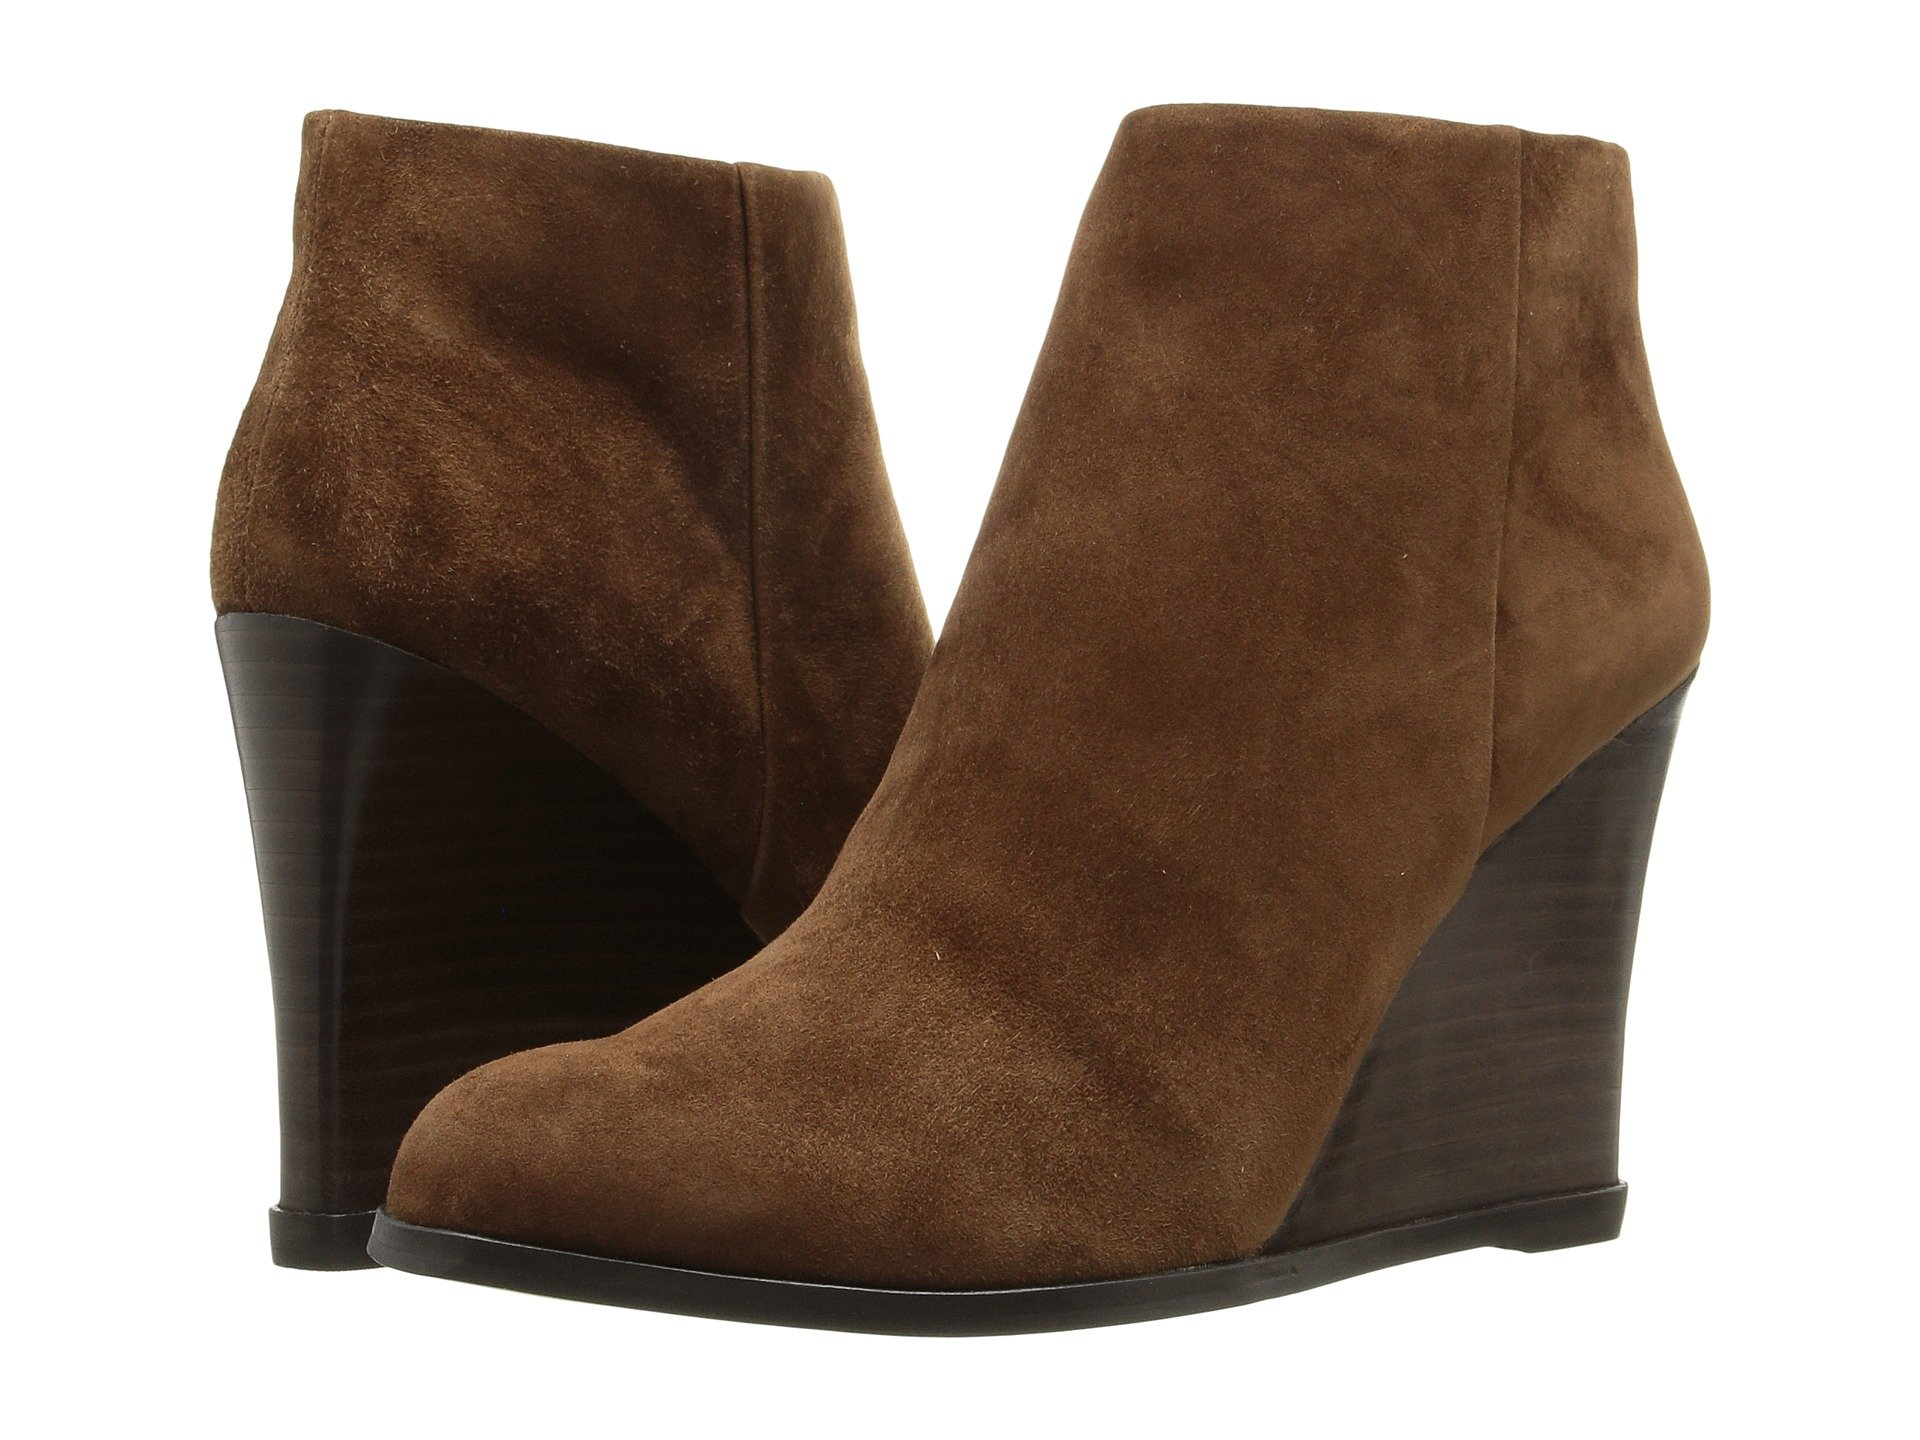 Vince Camuto Women's Gemina Ankle Bootie, Coco, 10 M US